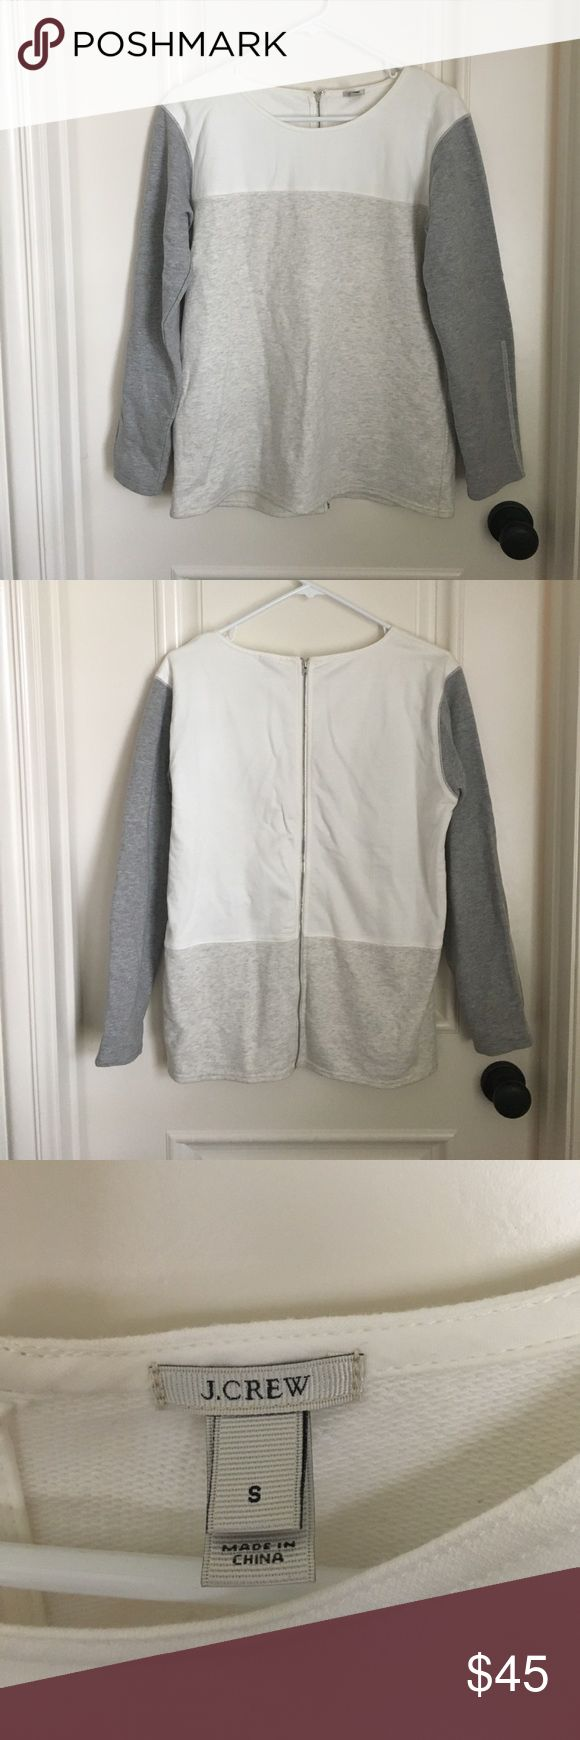 J.crew long sleeve top J.crew sweatshirt top, multi-color (white, gray, and cream), zipper down the back. 100% cotton, very cute with leggings and jeans, worn twice J. Crew Tops Tees - Long Sleeve